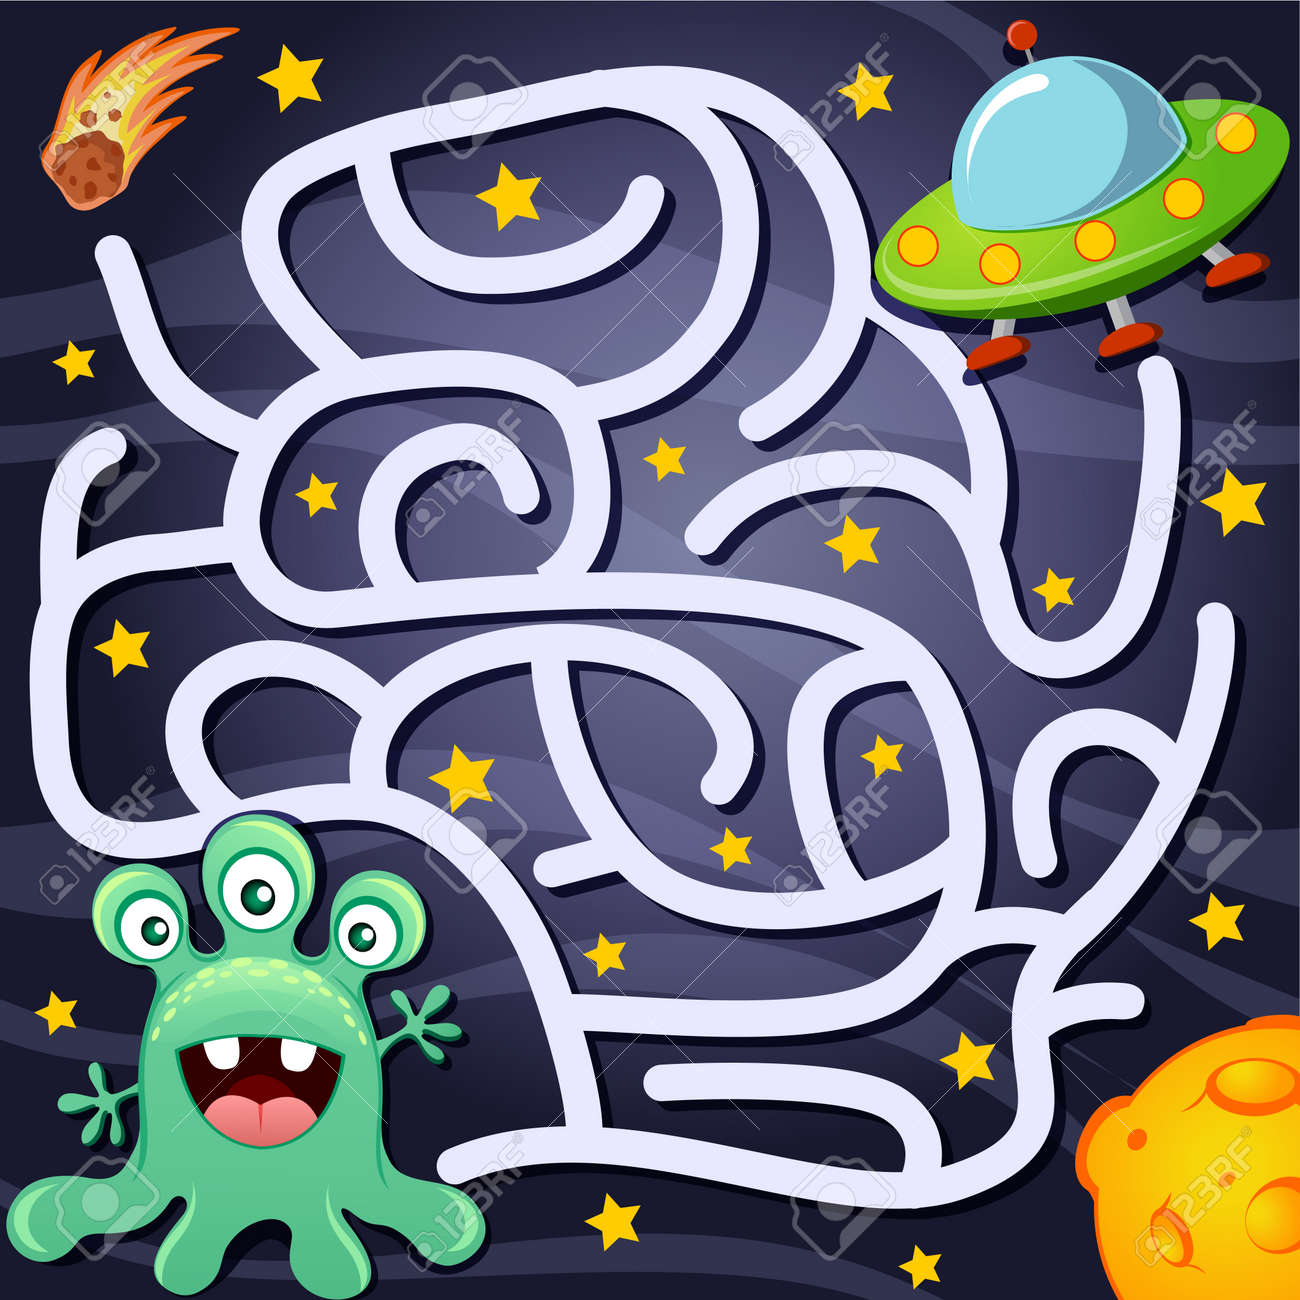 Help alien find path to UFO. Labyrinth. Maze game for kids - 94931409